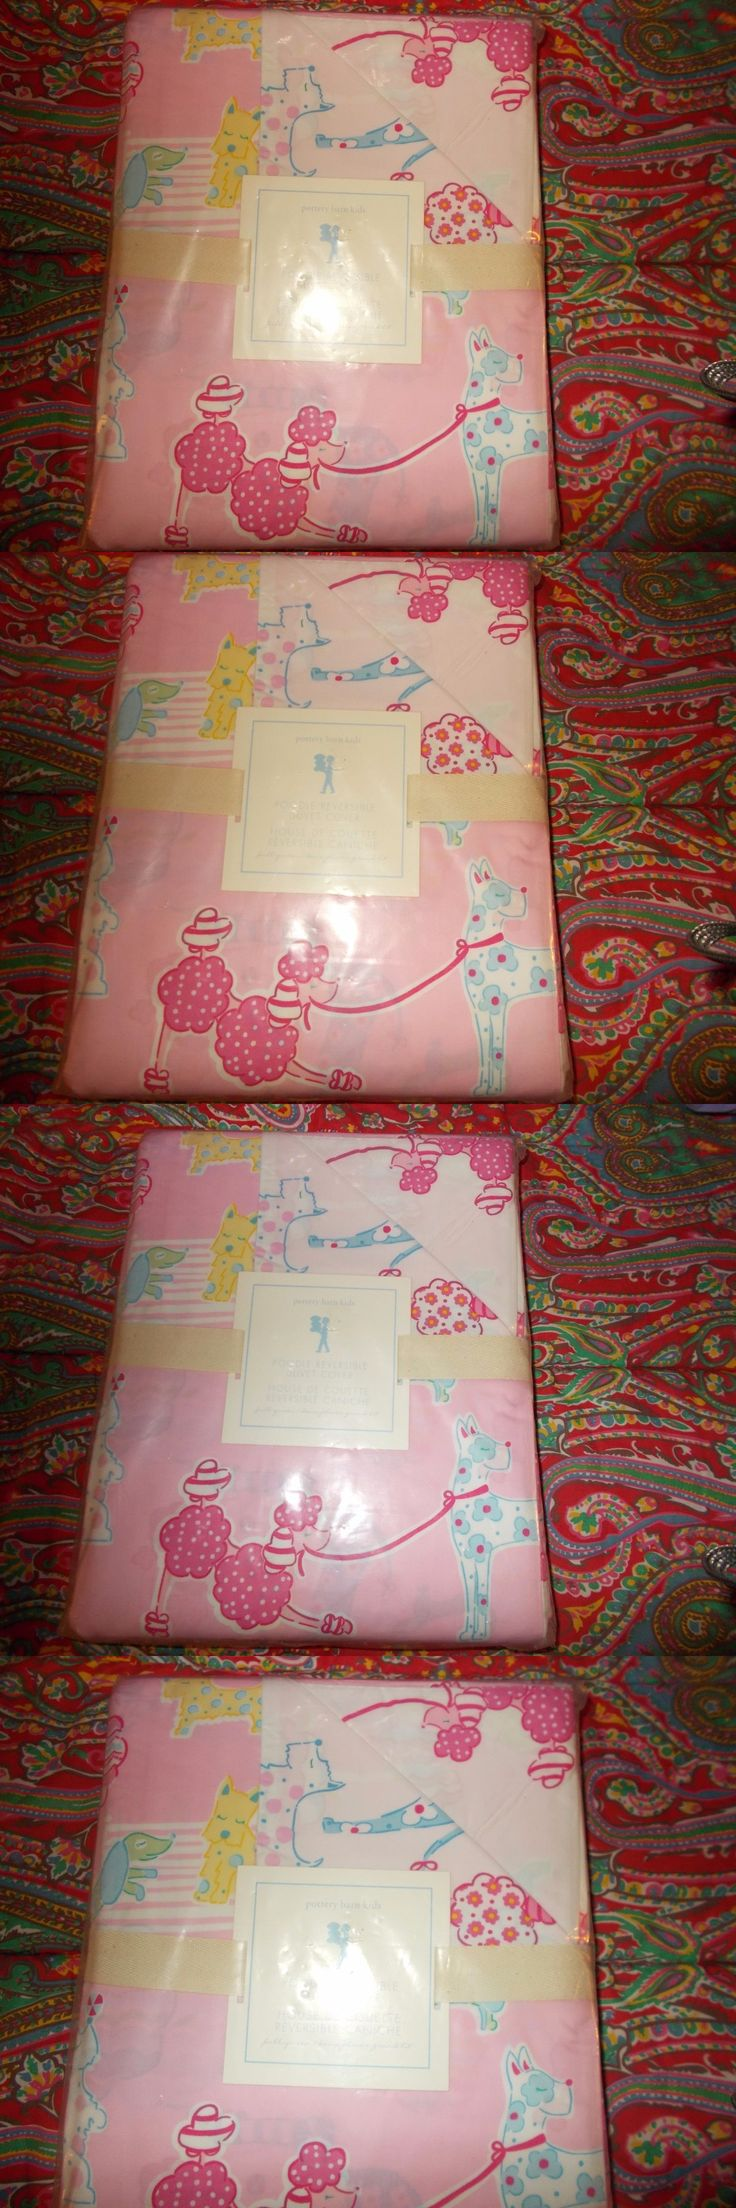 Kids Bedding: Pottery Barn Kids Poodle Reversible Duvet Cover, Full Queen, Pink, New -> BUY IT NOW ONLY: $66.39 on eBay!